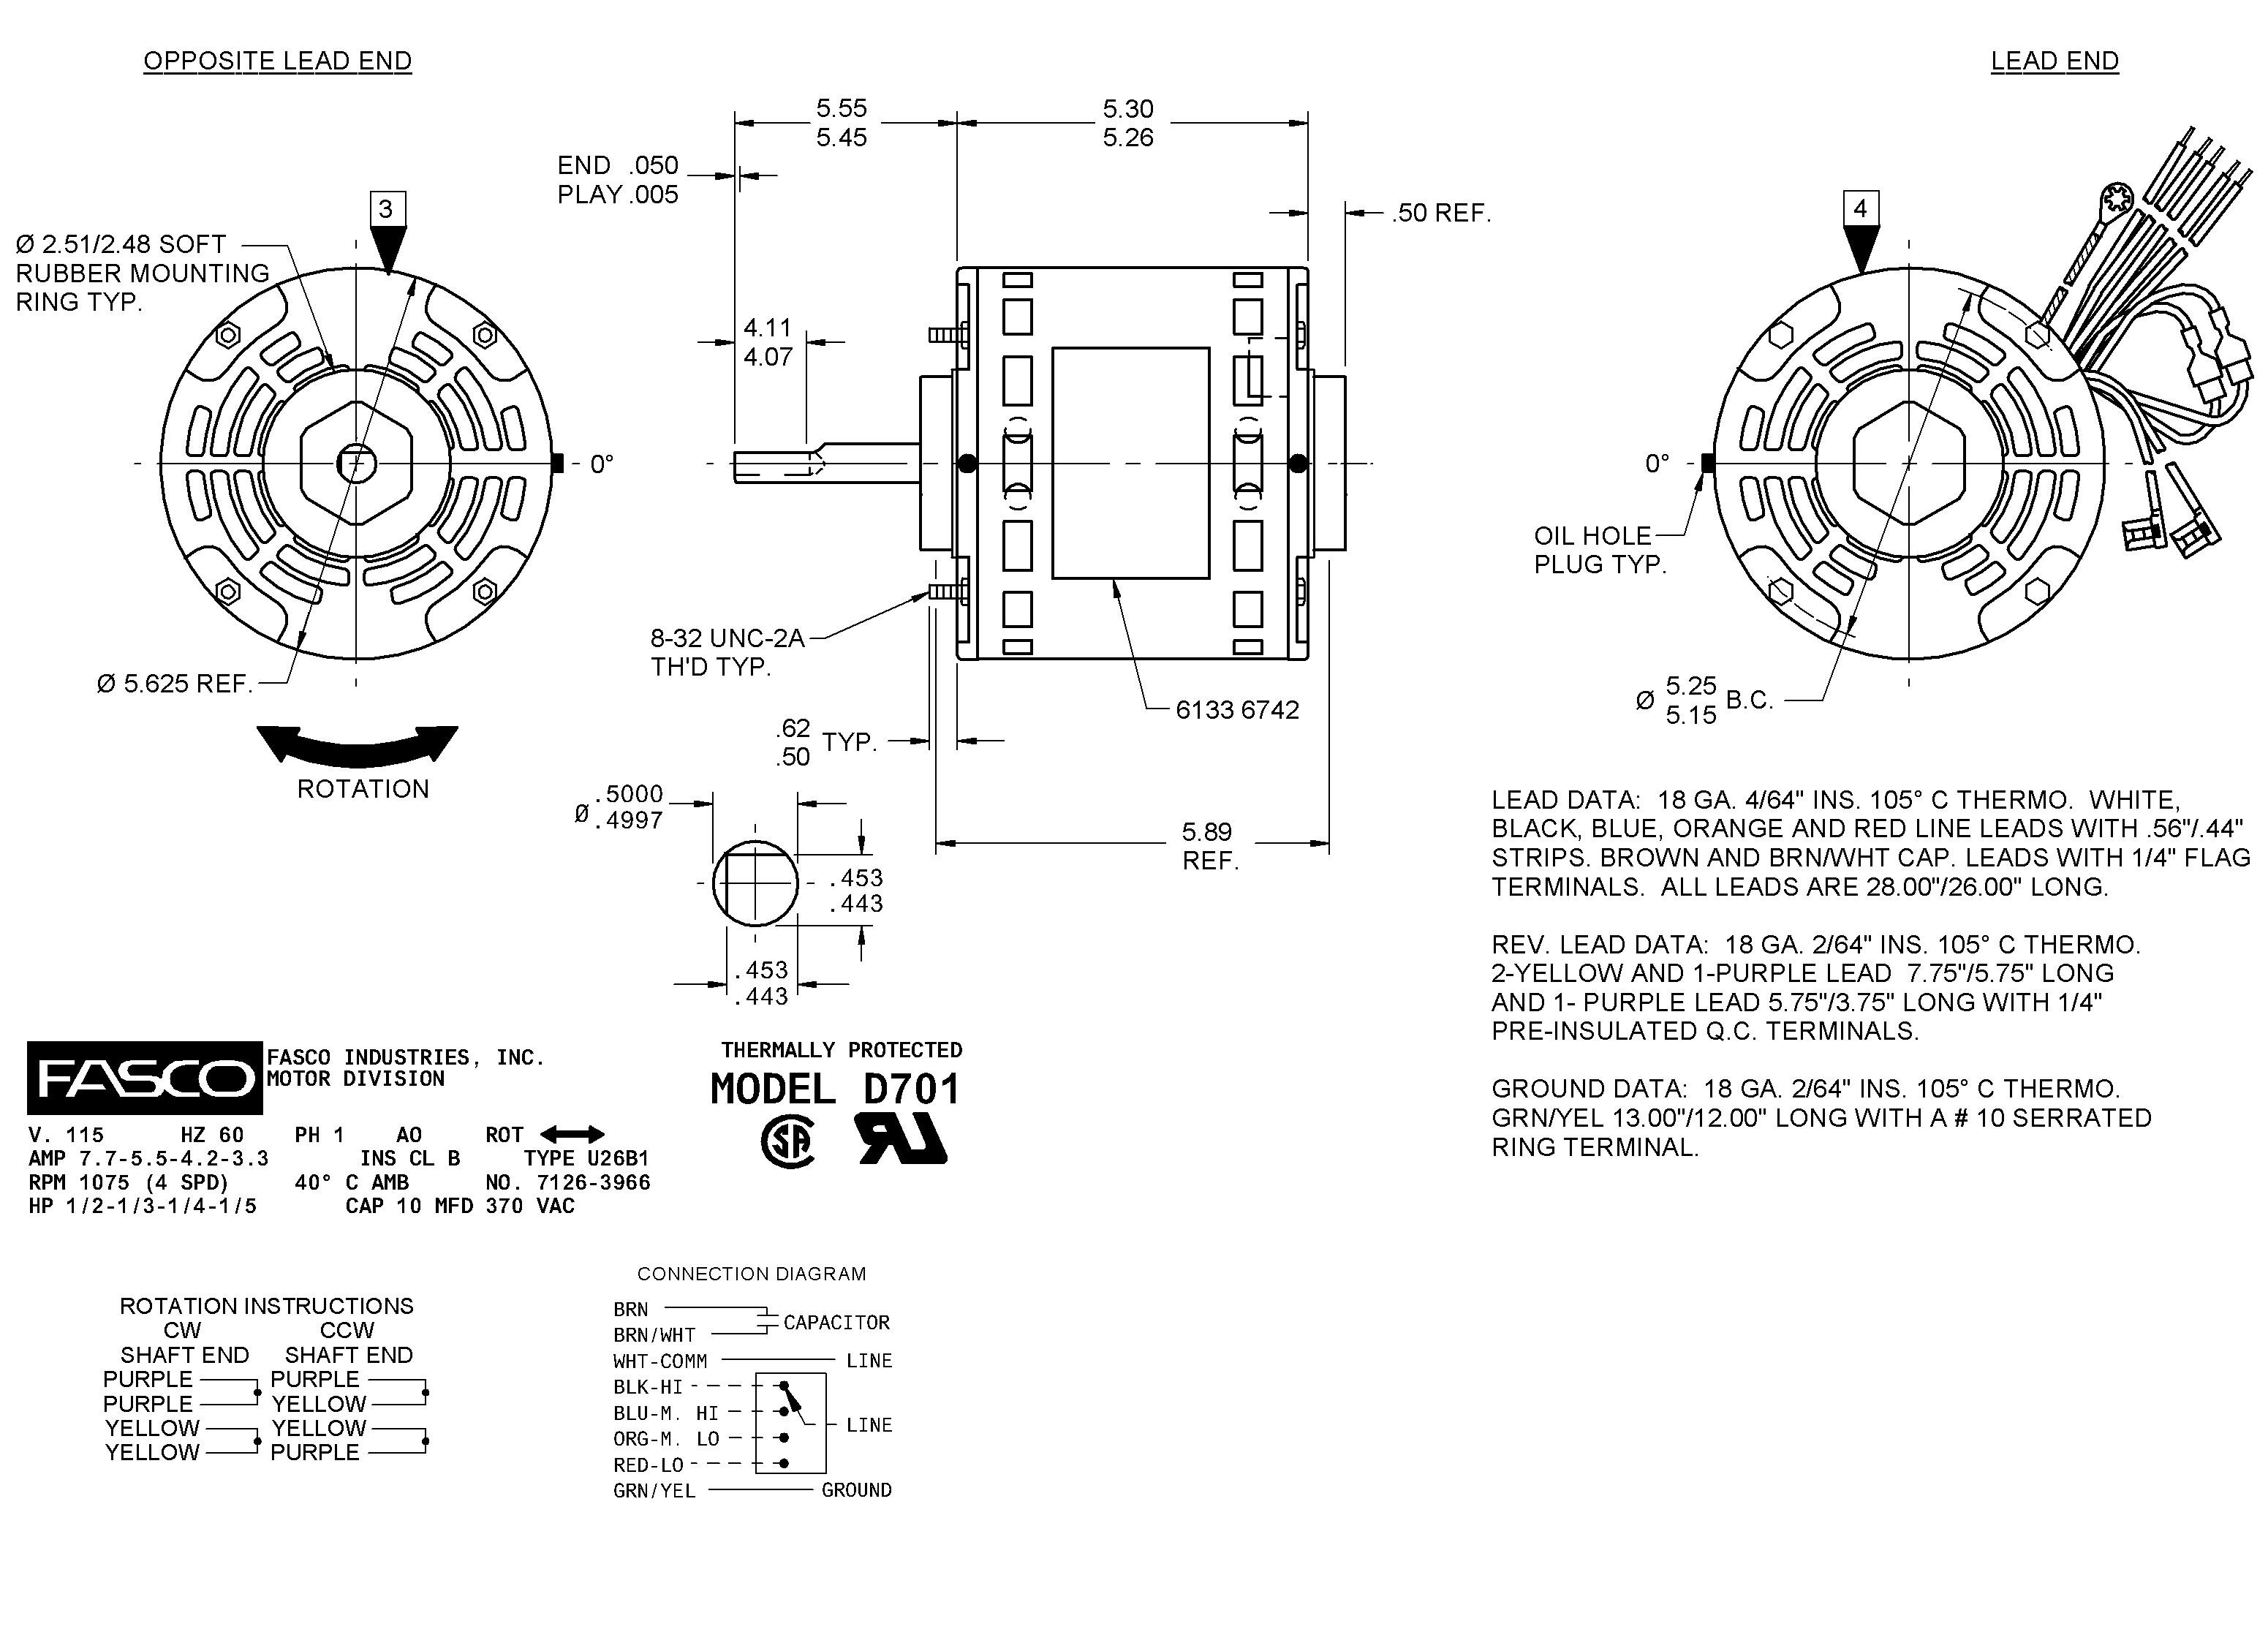 fasco blower motor wiring diagram Collection-Wiring Diagram For Fasco Blower Motor Refrence D701 Fasco 12 In Motor Wiring Diagram With Wiring Diagram 3-h